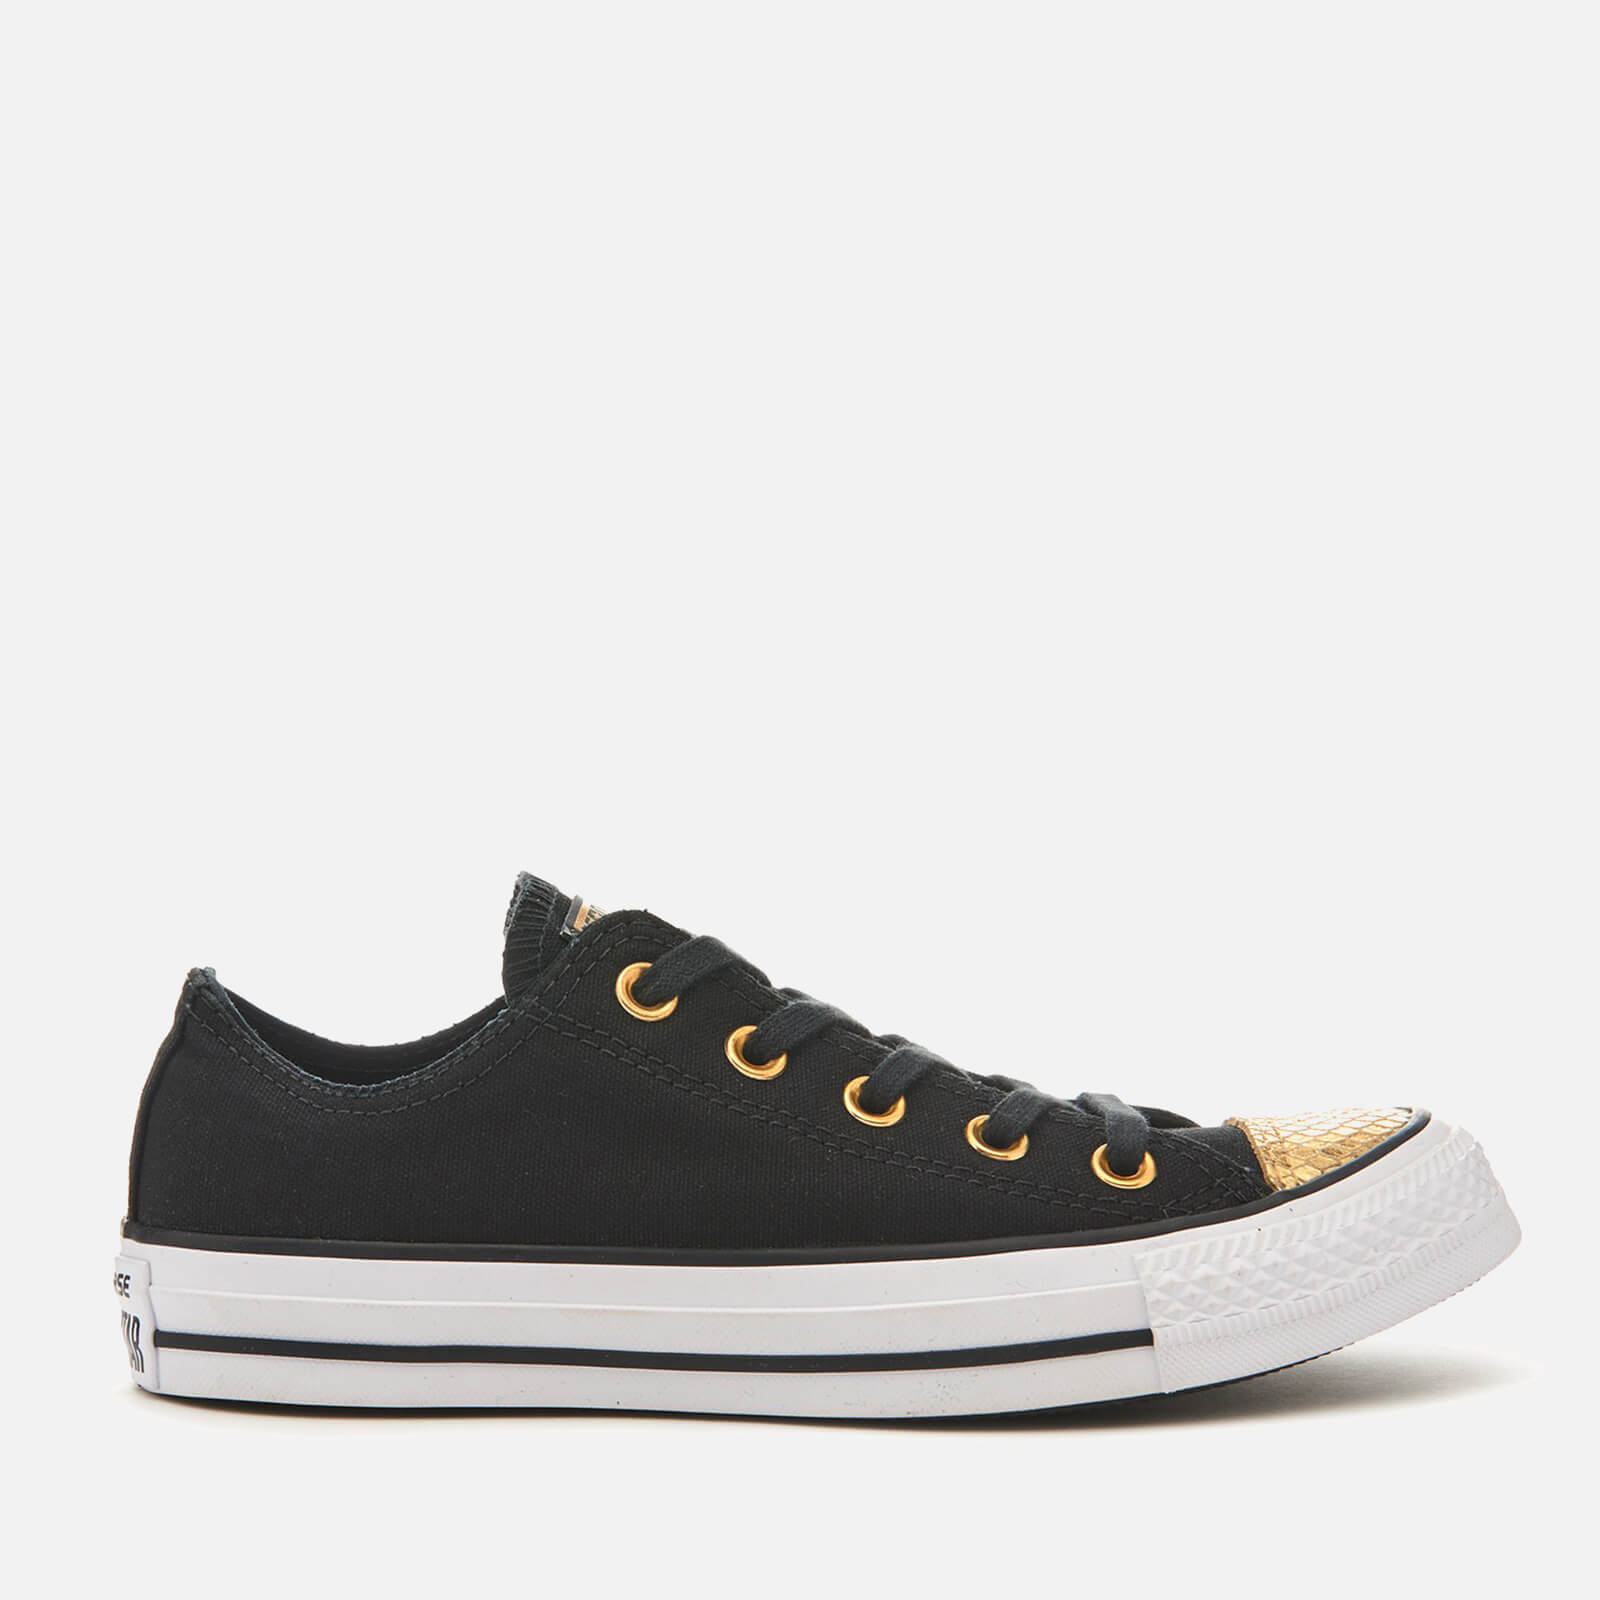 f8dad1125625 Converse Women s Chuck Taylor All Star Ox Trainers - Black Gold White -  Free UK Delivery over £50